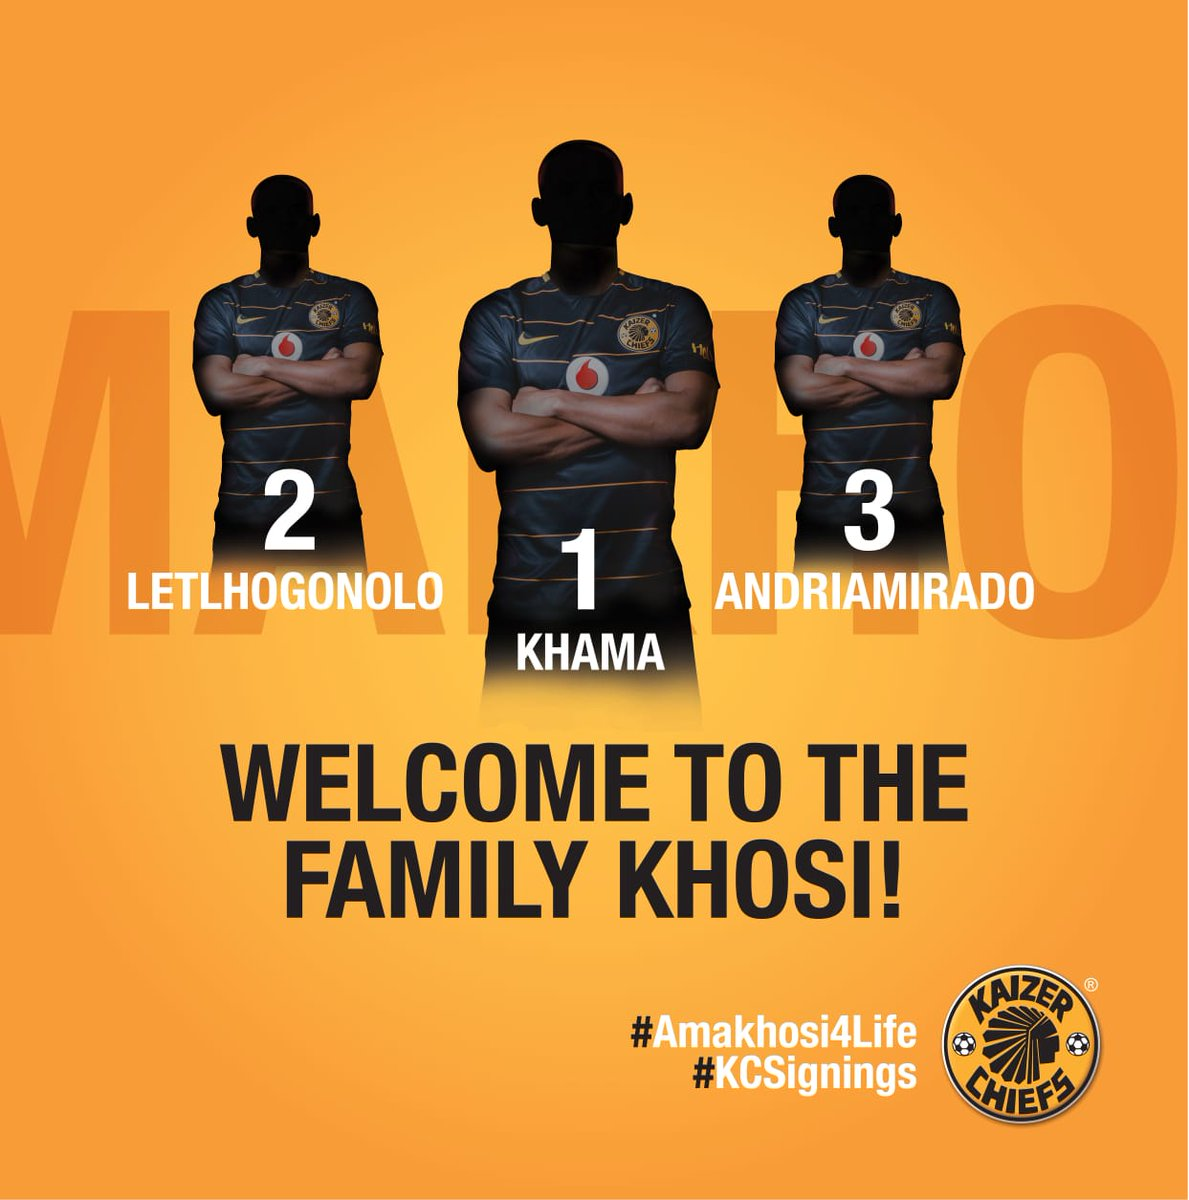 Player Updates  So much speculation, so many rumours, yes Amakhosi Faithful, our Family is expanding!  We want to confirm the signing of Khama Billiat, Letlhogonolo Mirwa and Andriamirado Andrianarimanana.  Welcome to the Amakhosi Family!  https://t.co/Ar8PXvpqHc  #Amakhosi4Life